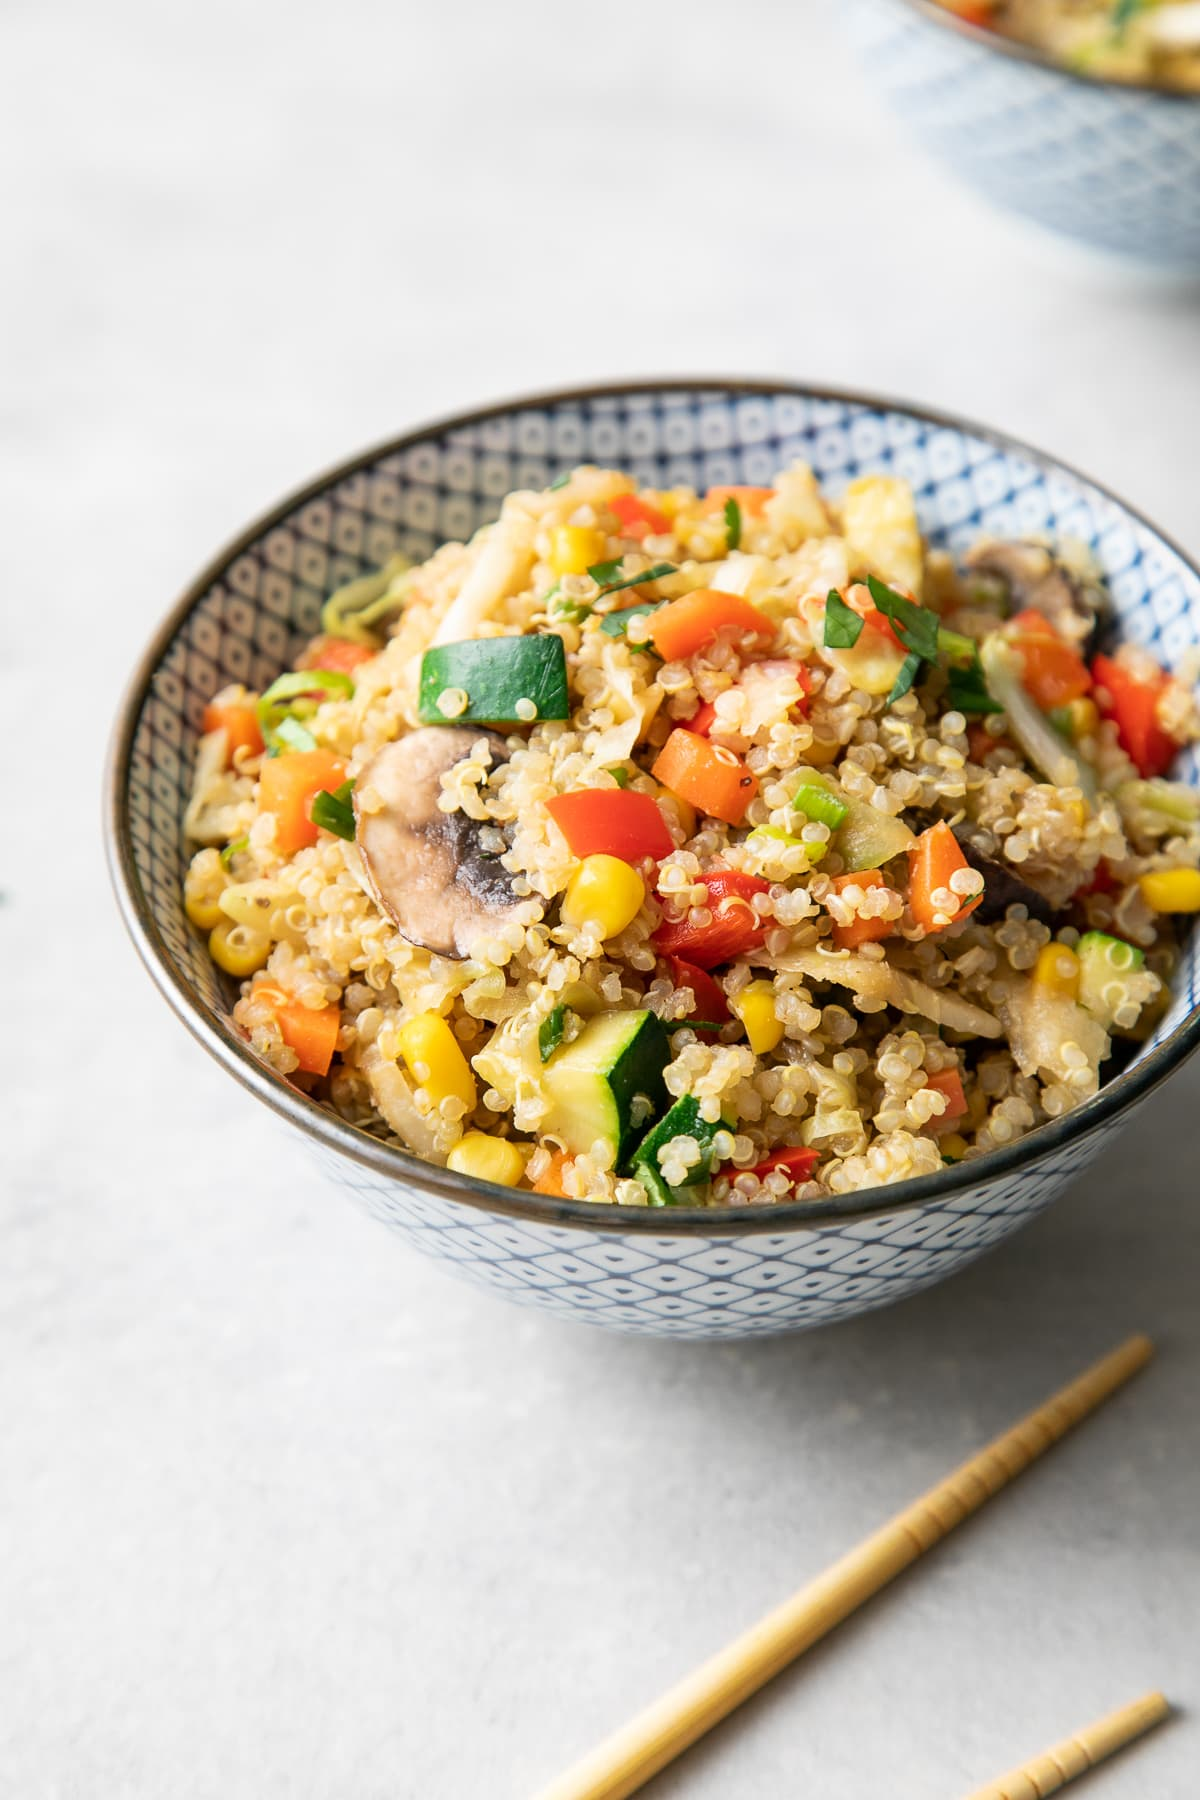 side angle view of blue and white bowl with vegetable quinoa fried rice.